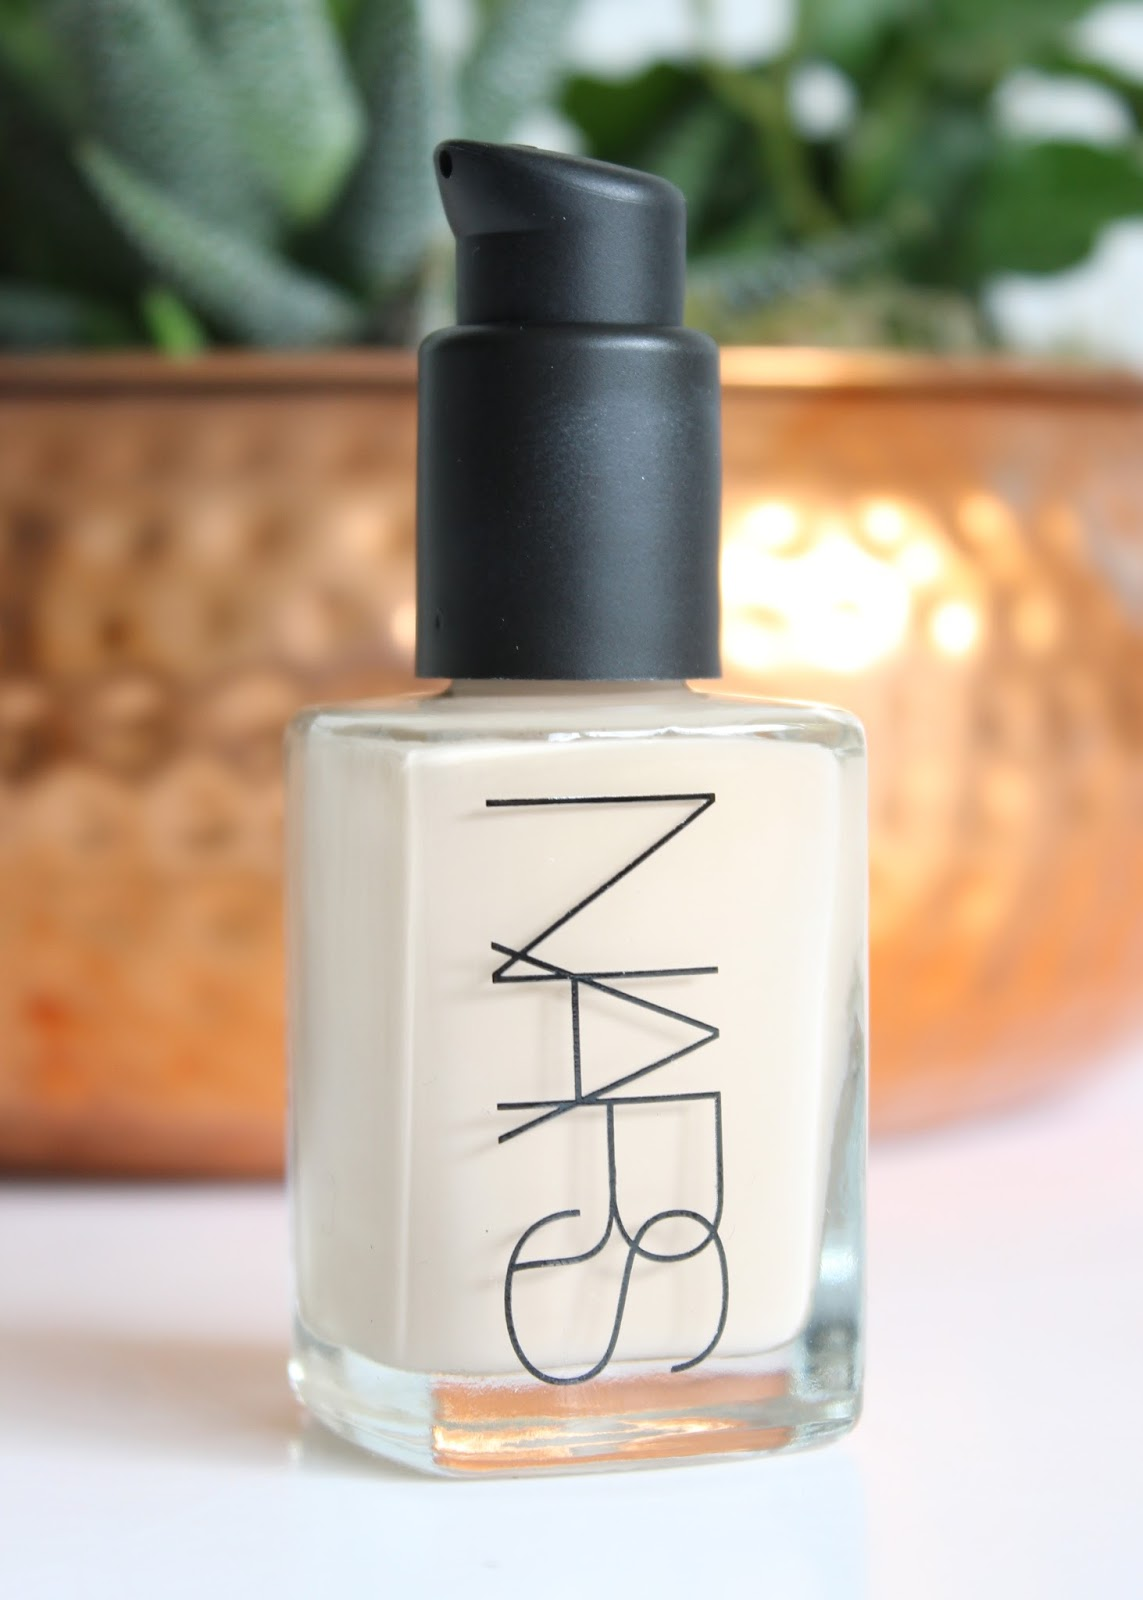 NARS Sheer Glow Foundation | Full Review